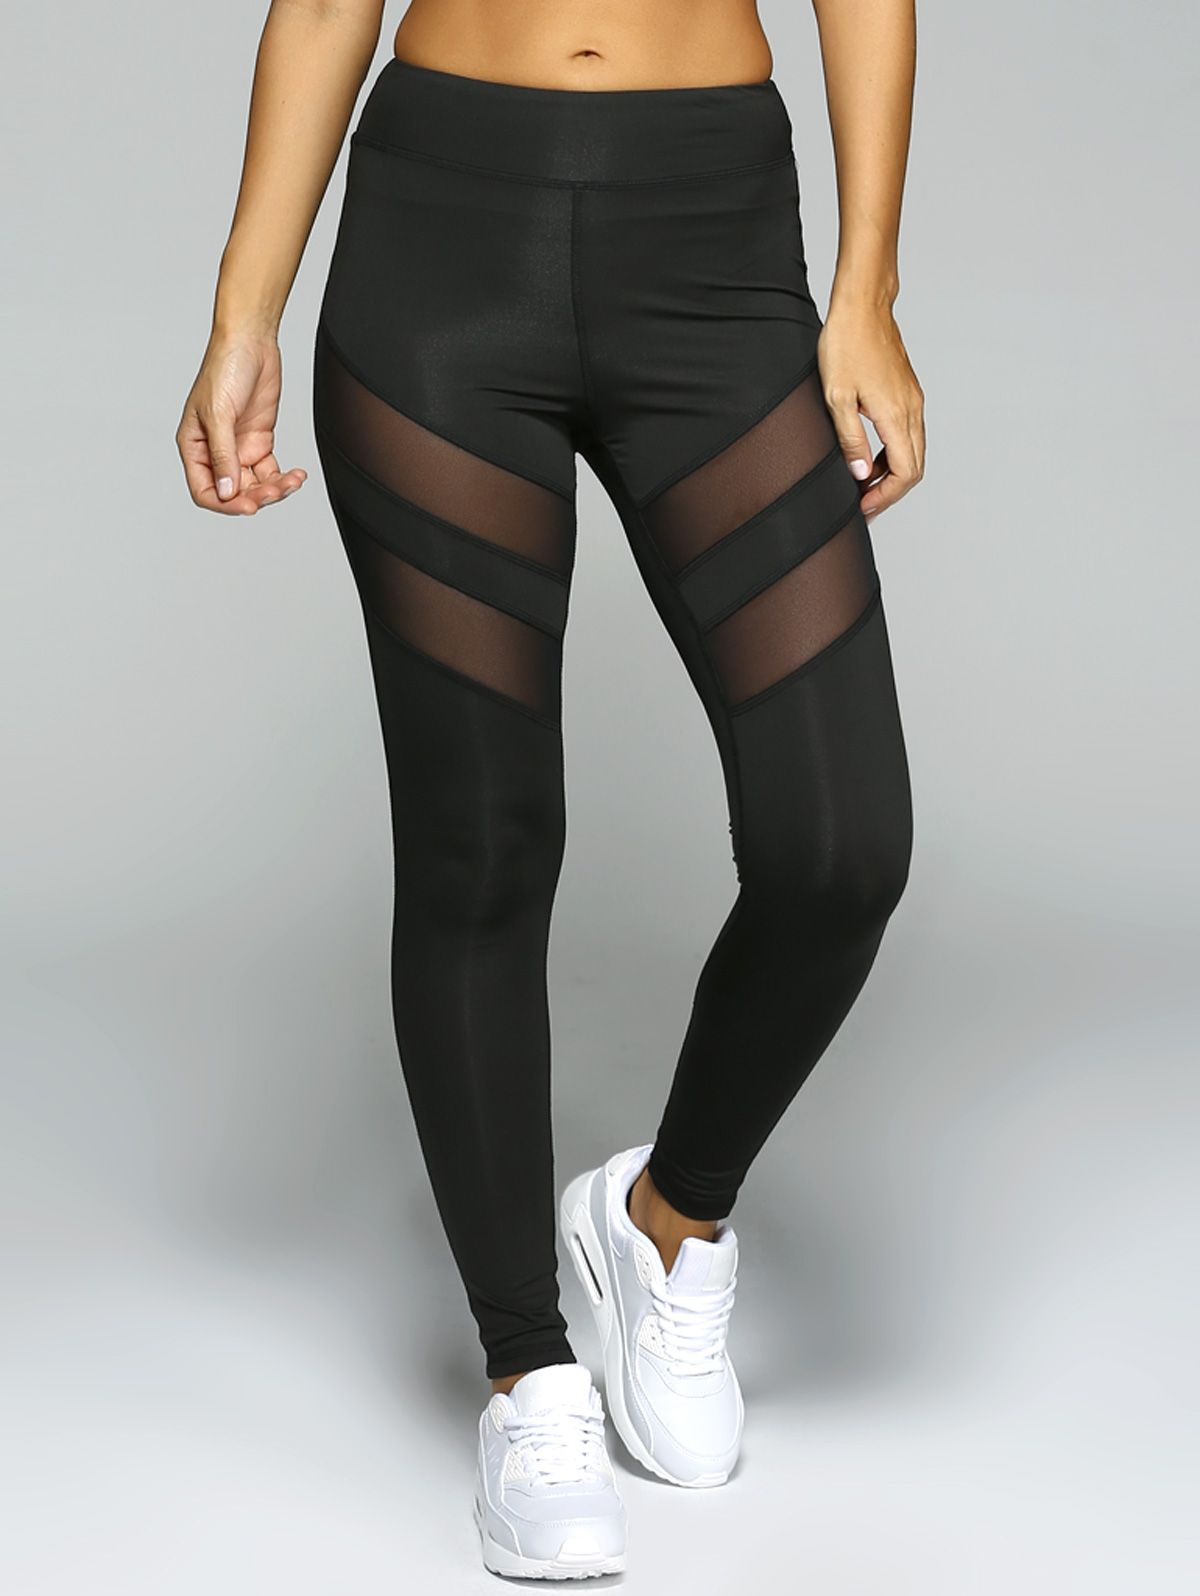 e86ab0201f9bca Browse the latest sports leggings, activewear leggings for women online at  ZAFUL. Shop the fashion sports tights and athletic leggings with affordable  ...